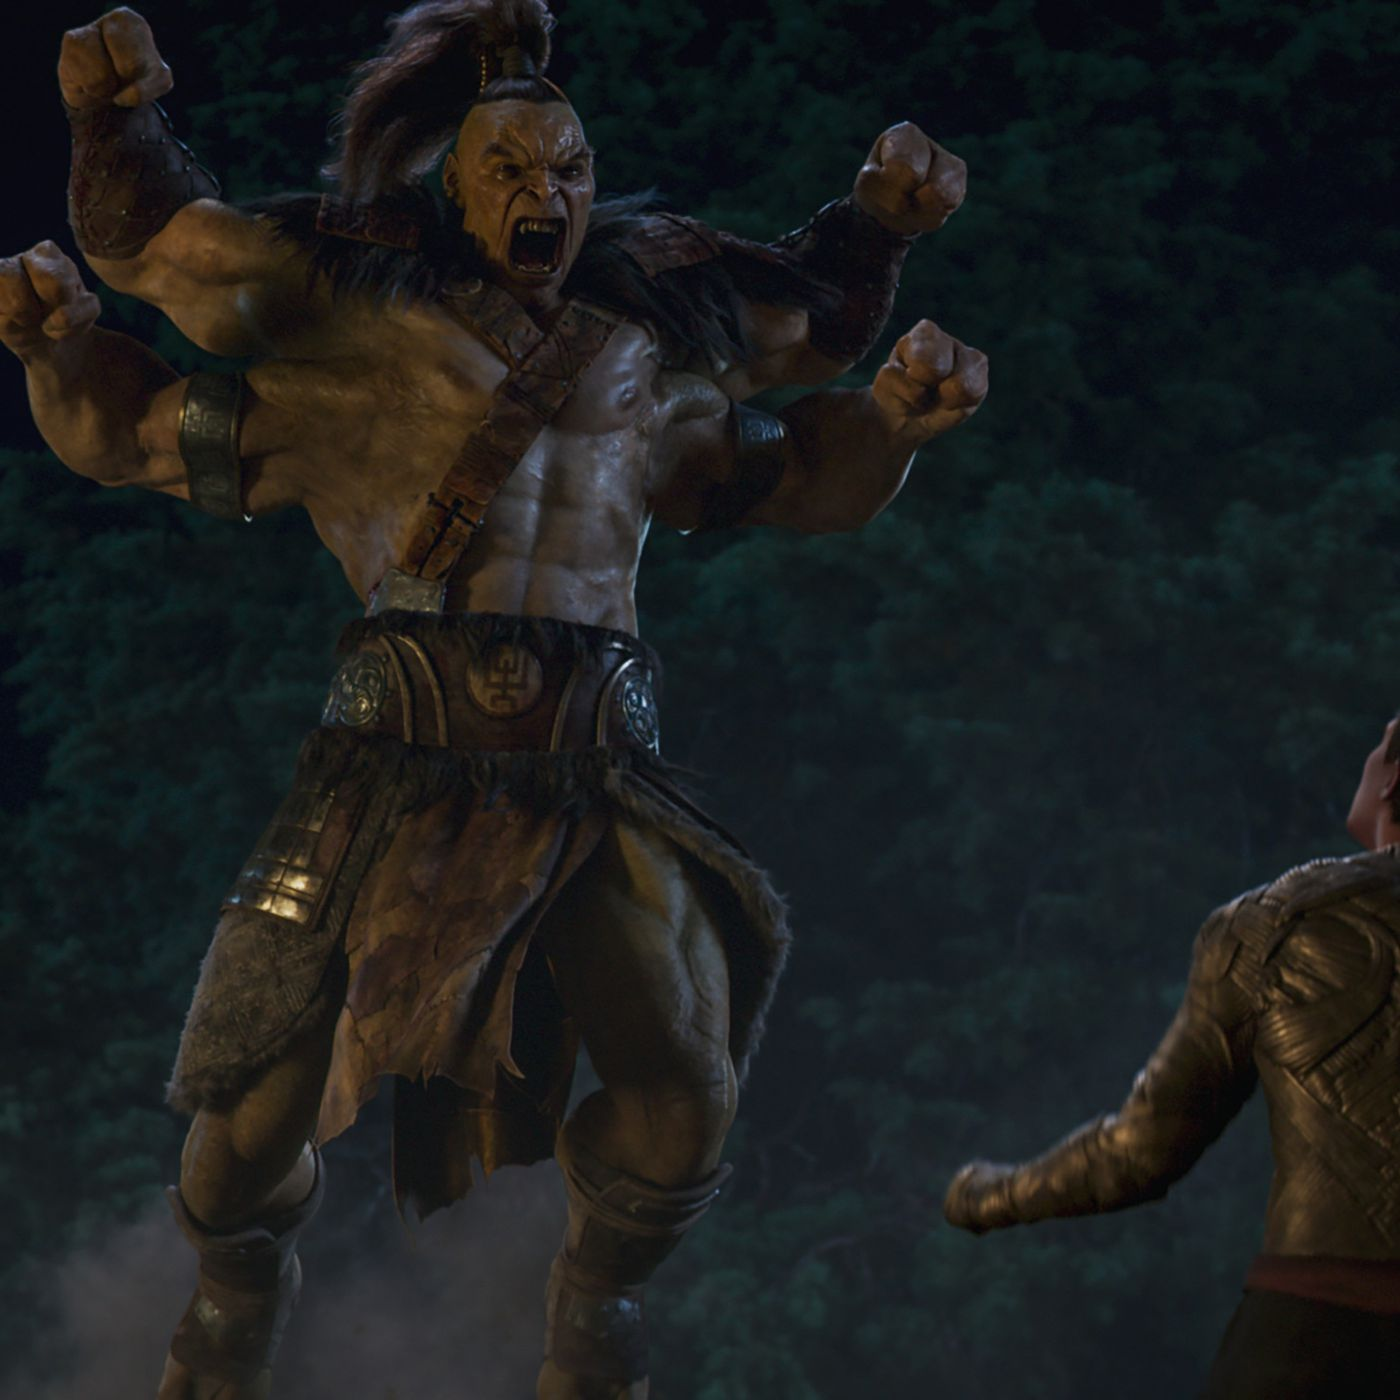 Mortal Kombat' review: Brutal fights look almost as painful as the dialogue  - Chicago Sun-Times